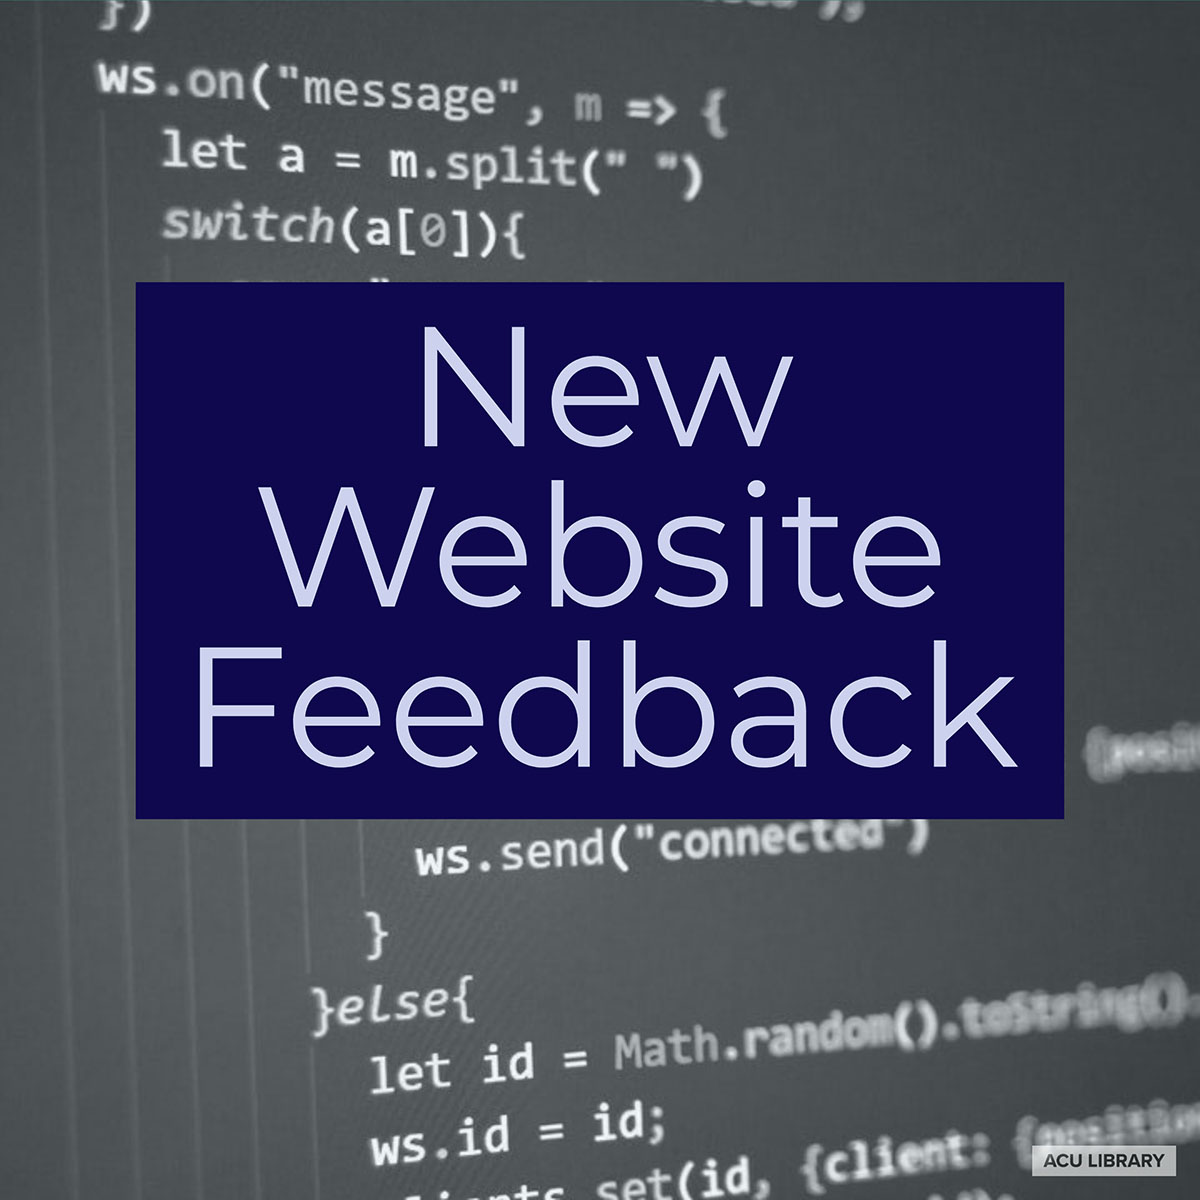 Library's New Website Feedback